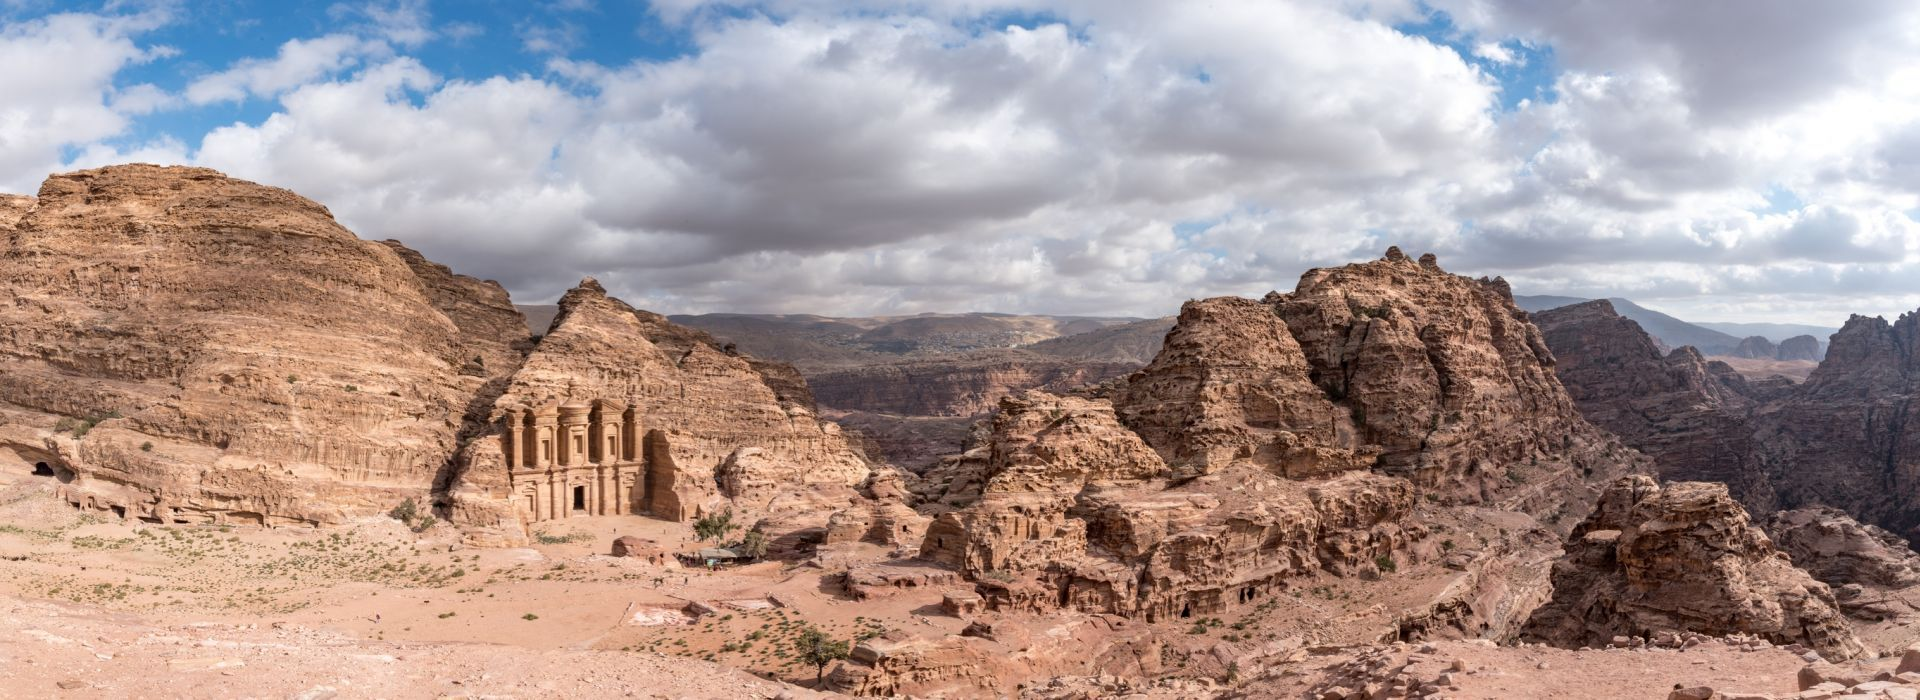 Sightseeing, attractions, culture and history Tours in Jordan